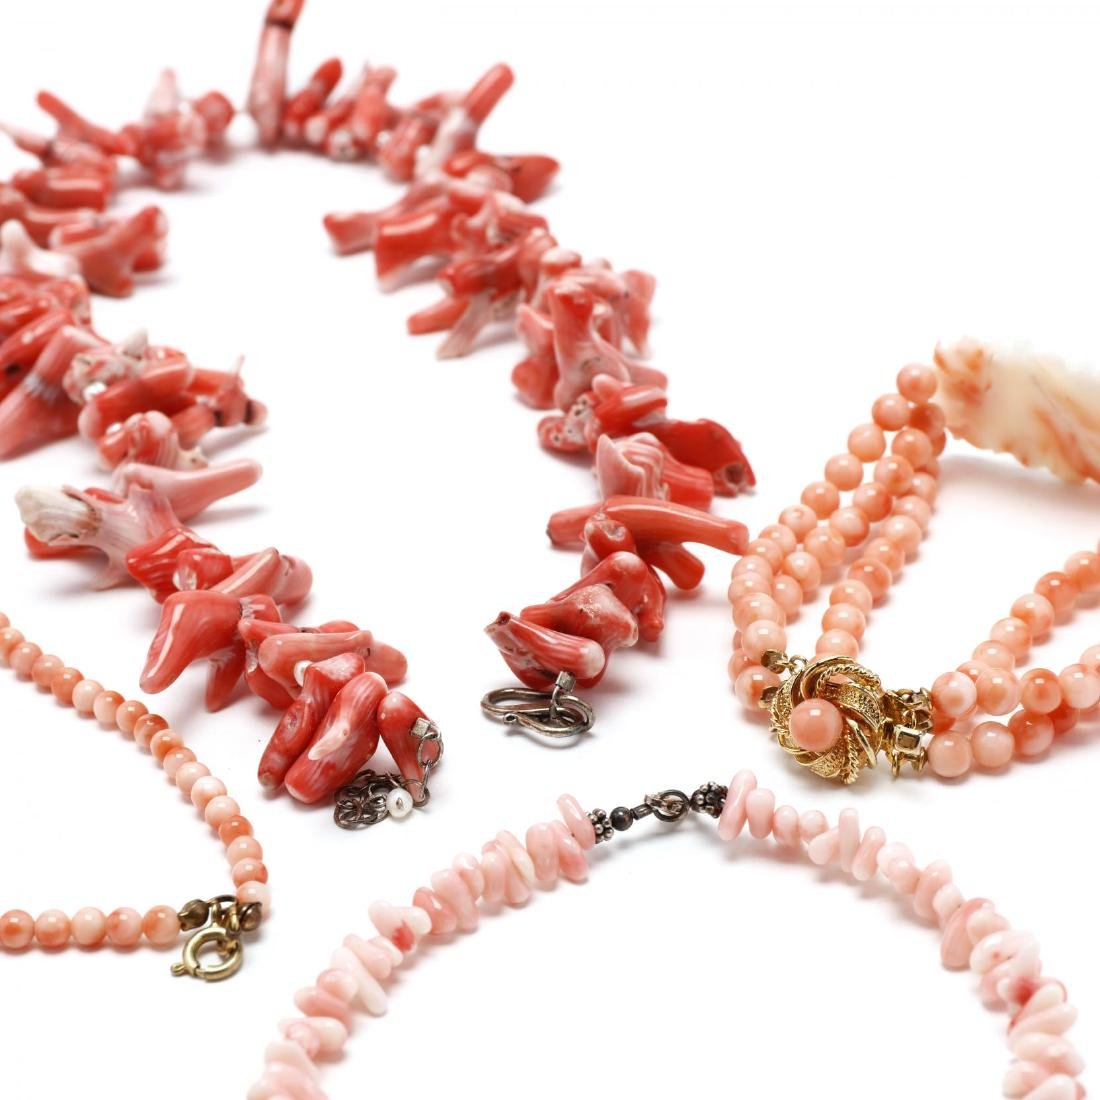 Five Coral Bead Jewelry Items - 3